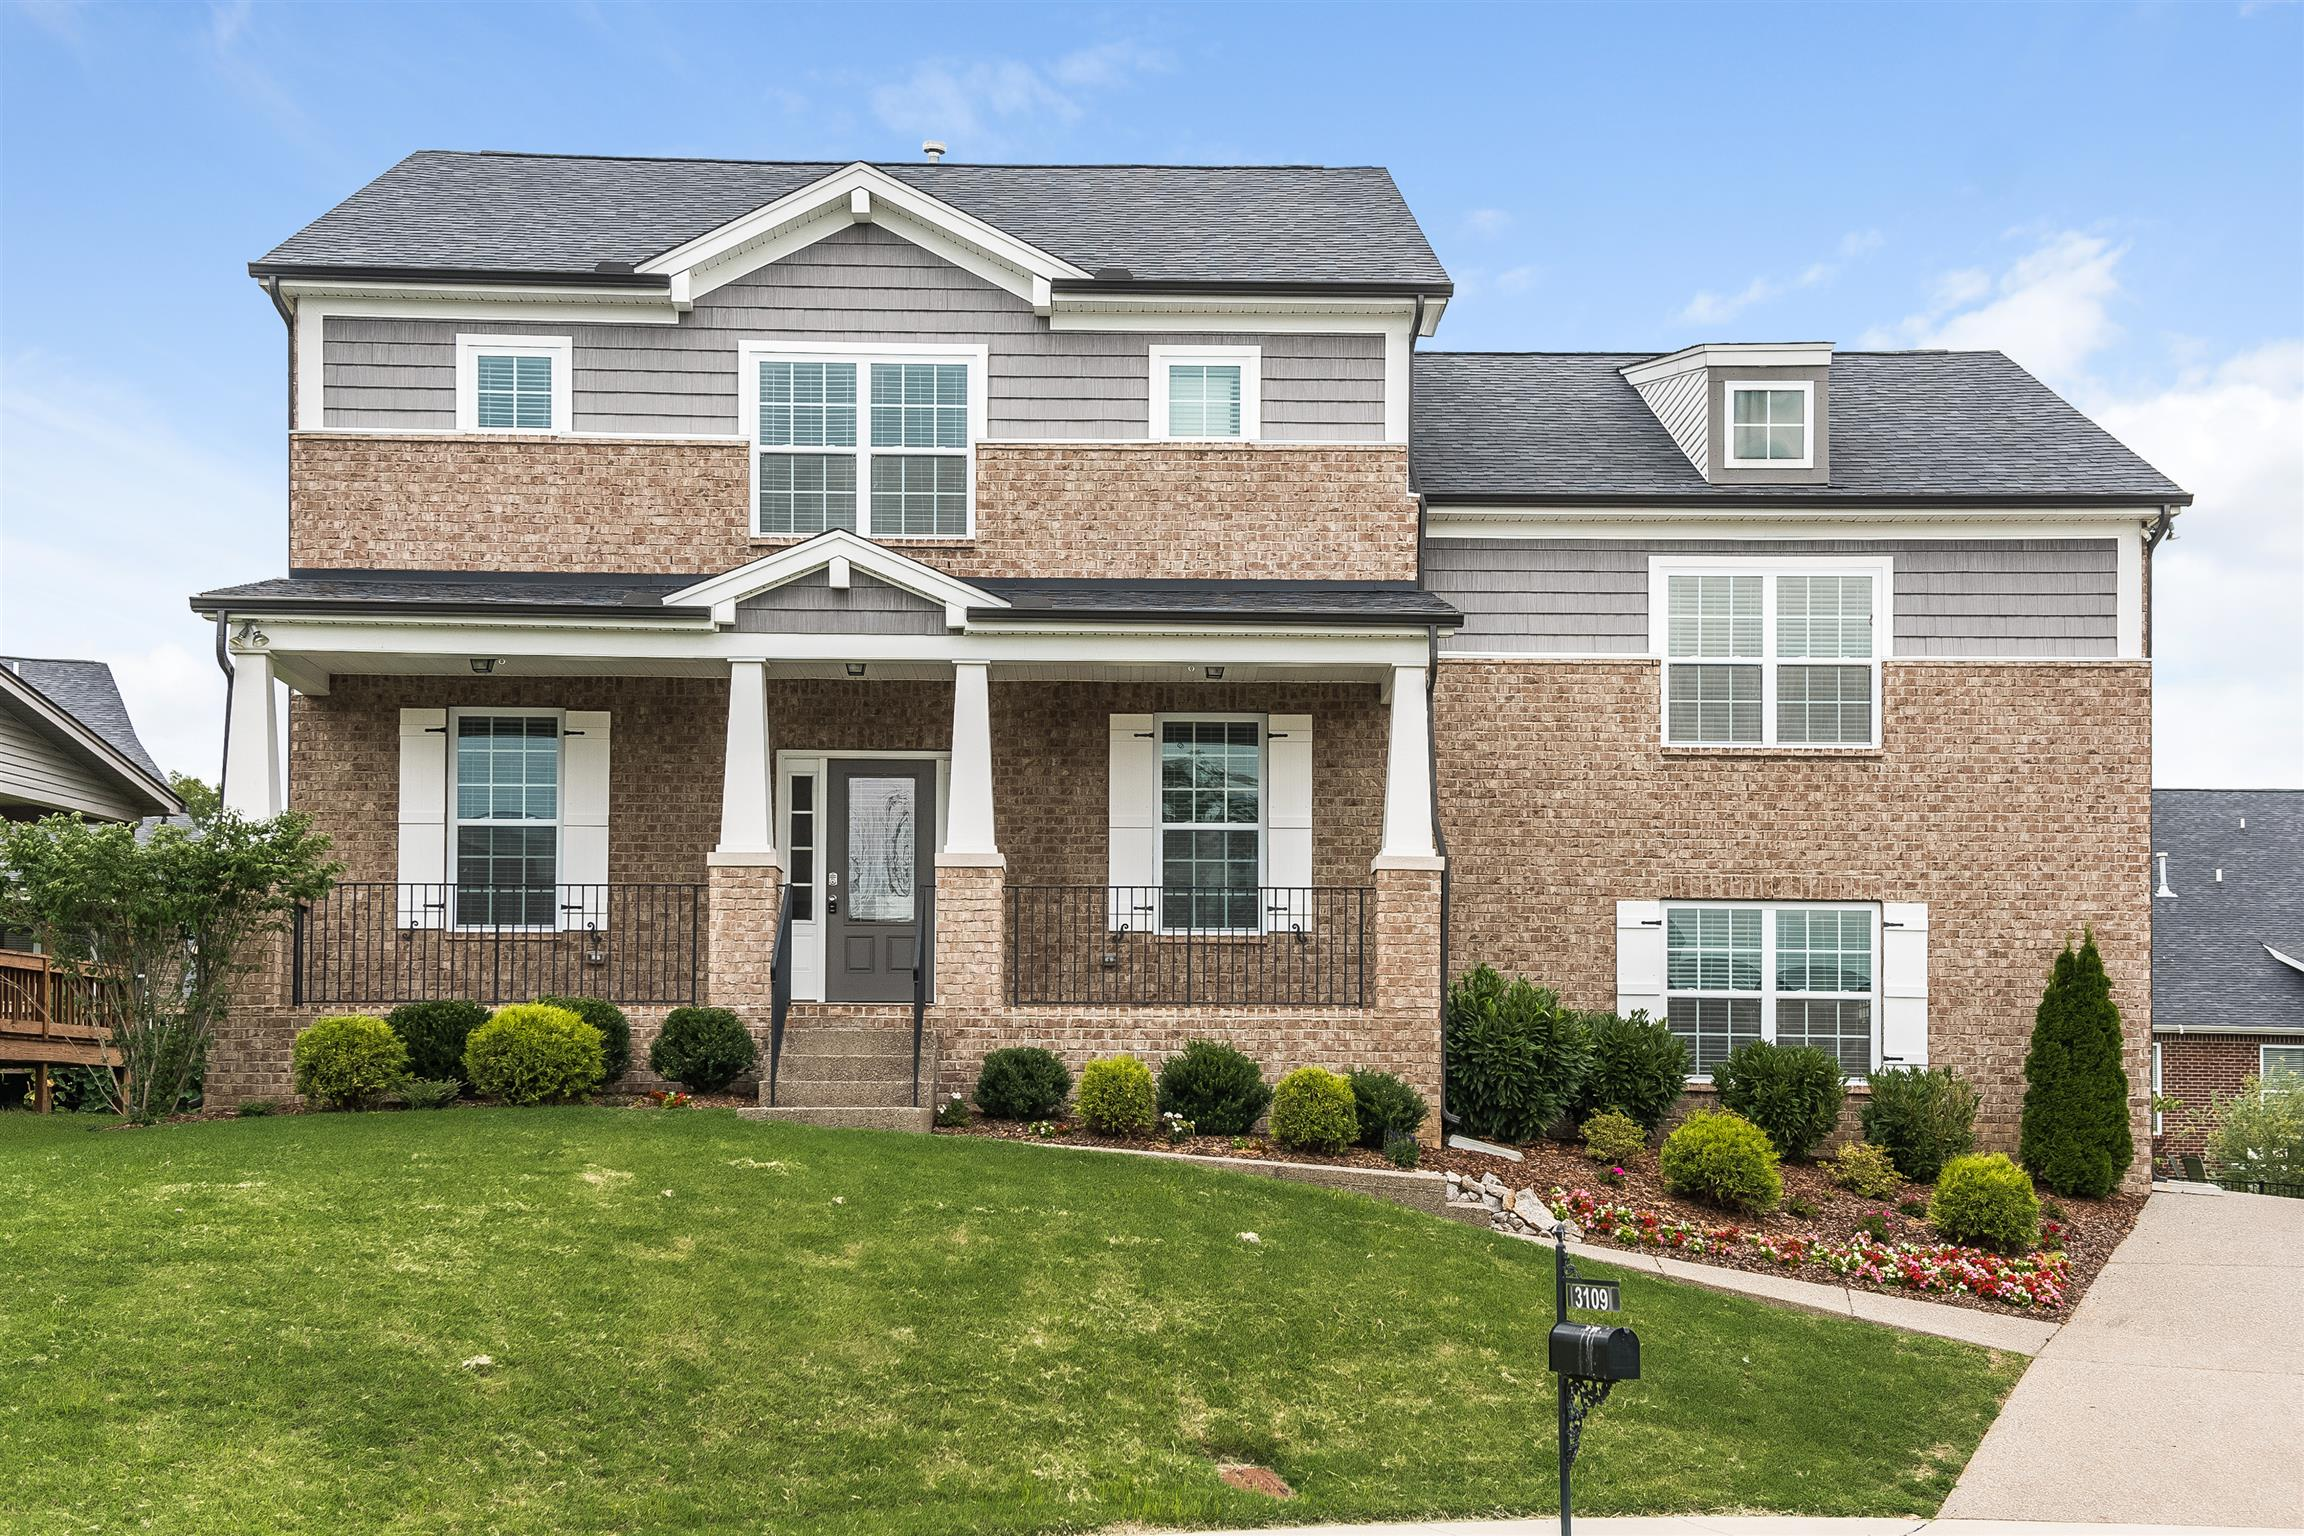 3109 Cooks Ct, Hermitage, Tennessee